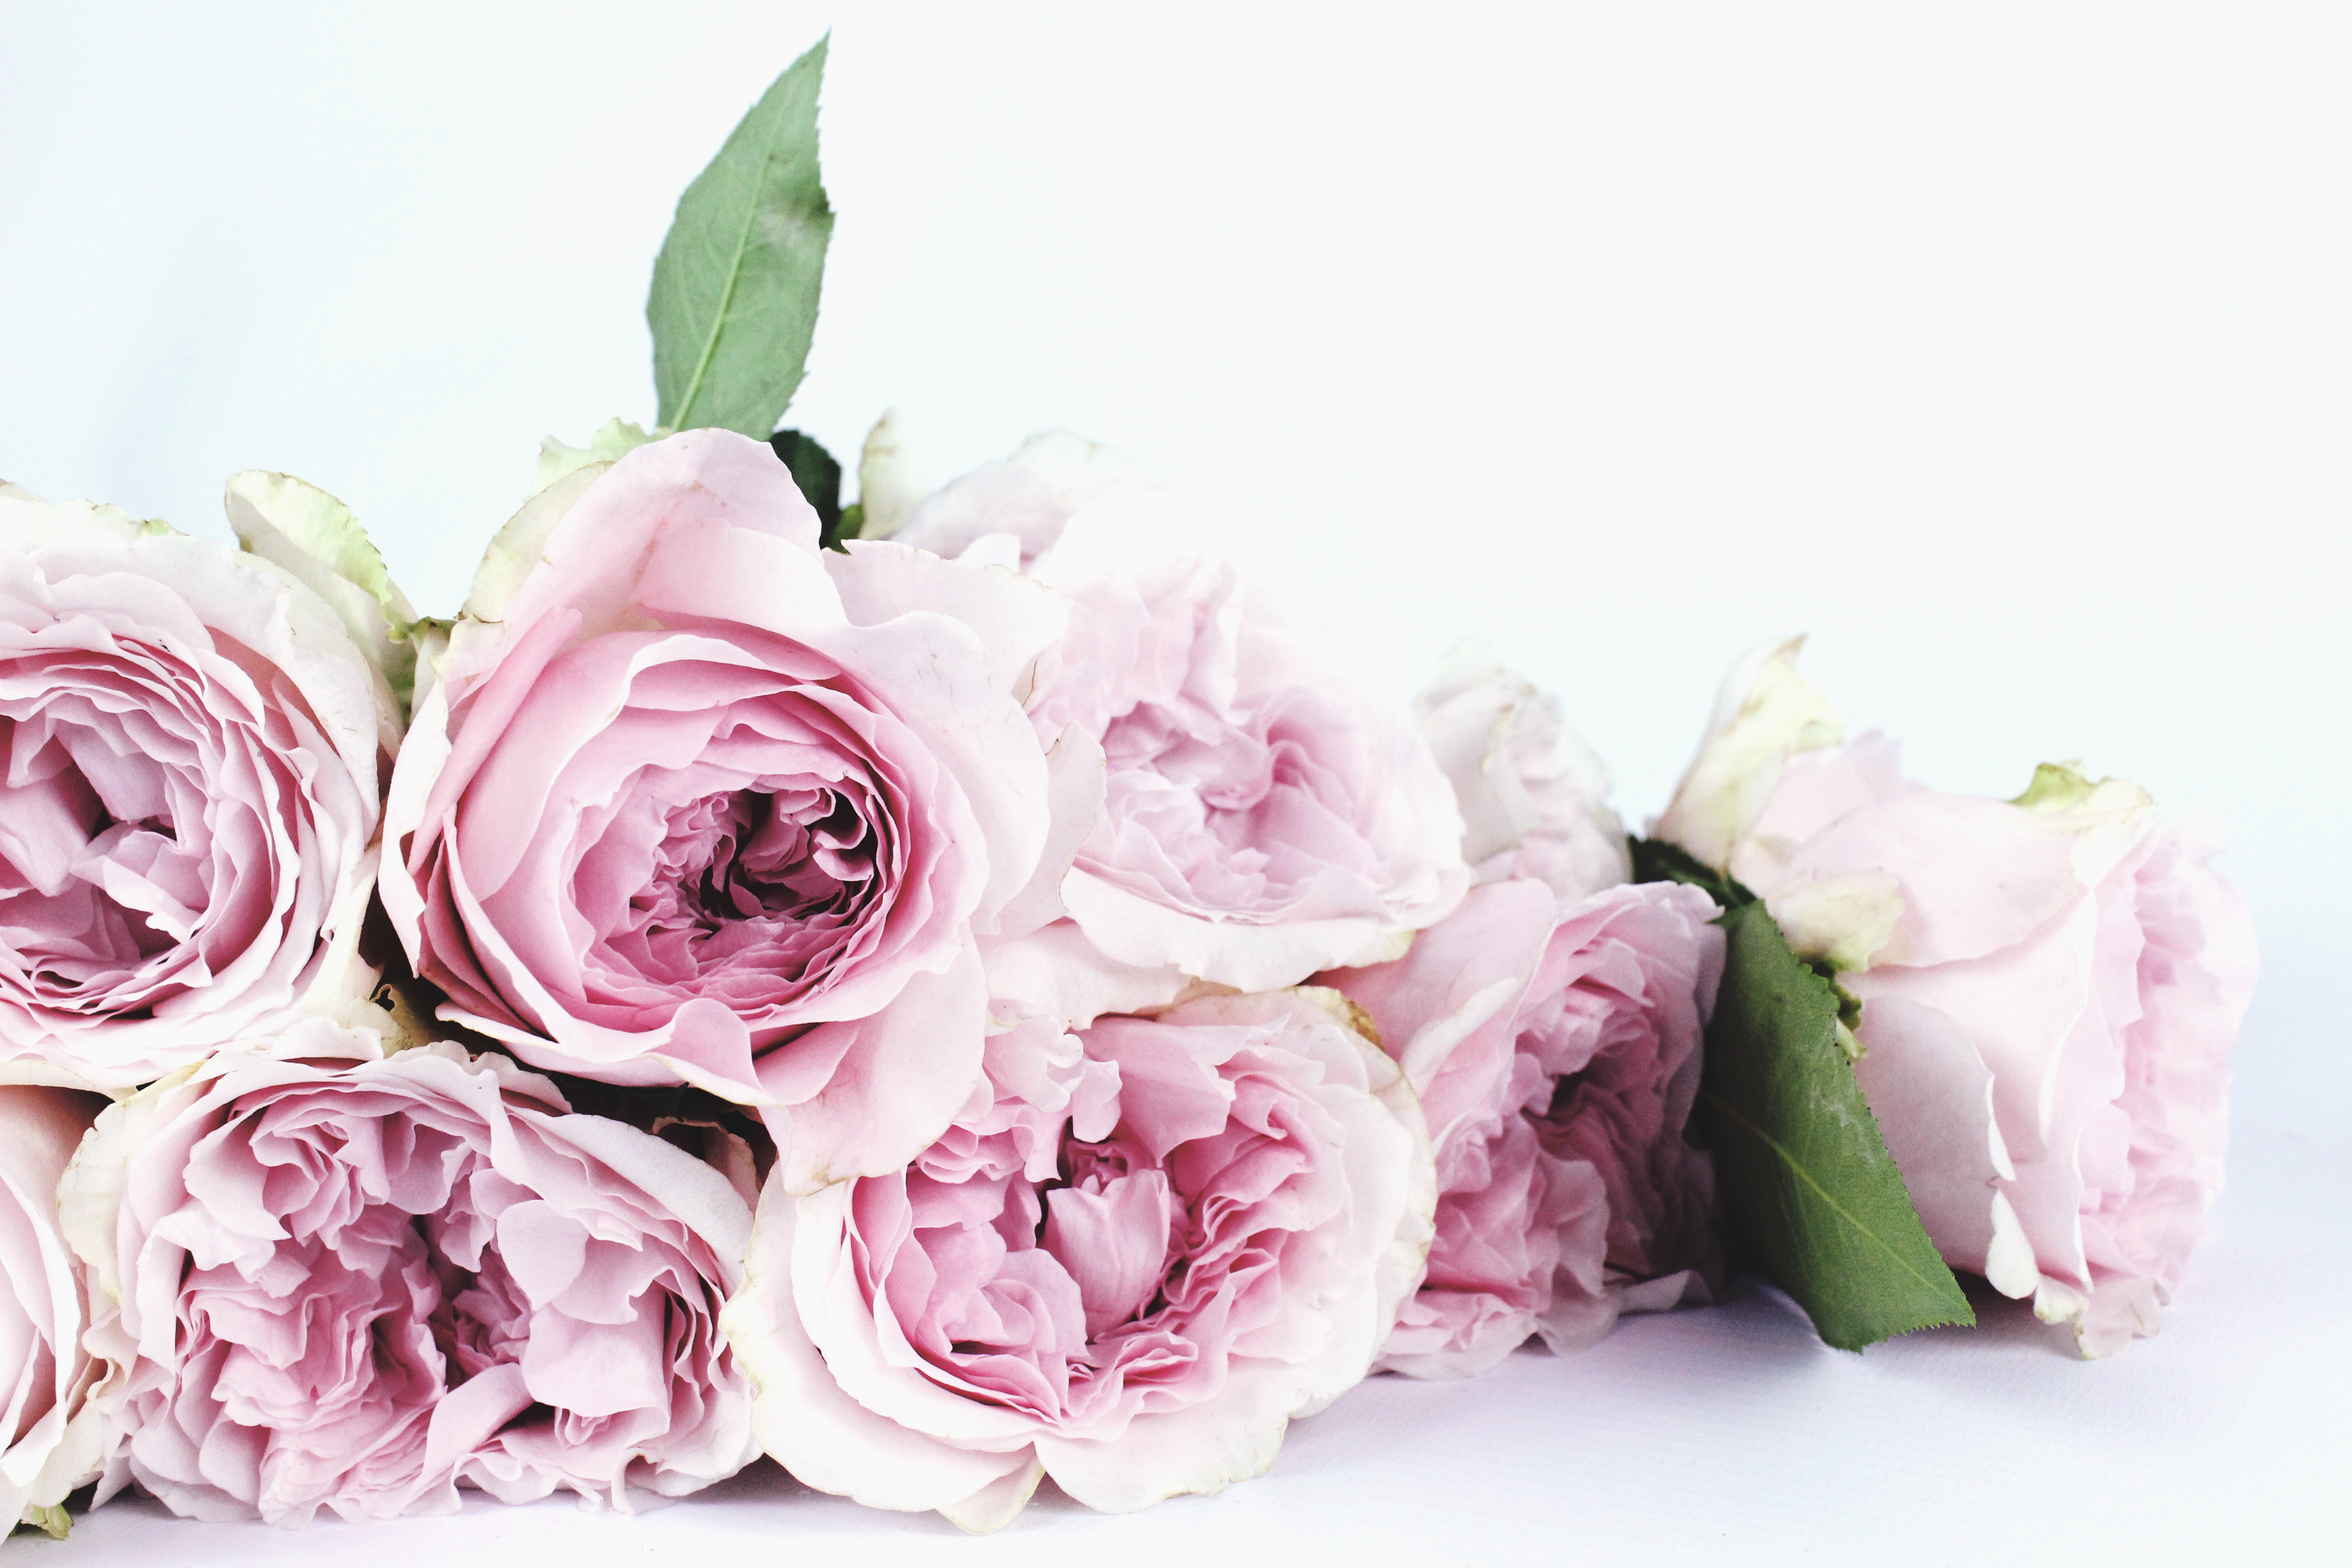 Free jpeg images of flowers picture download Flower images · Pexels · Free Stock Photos picture download